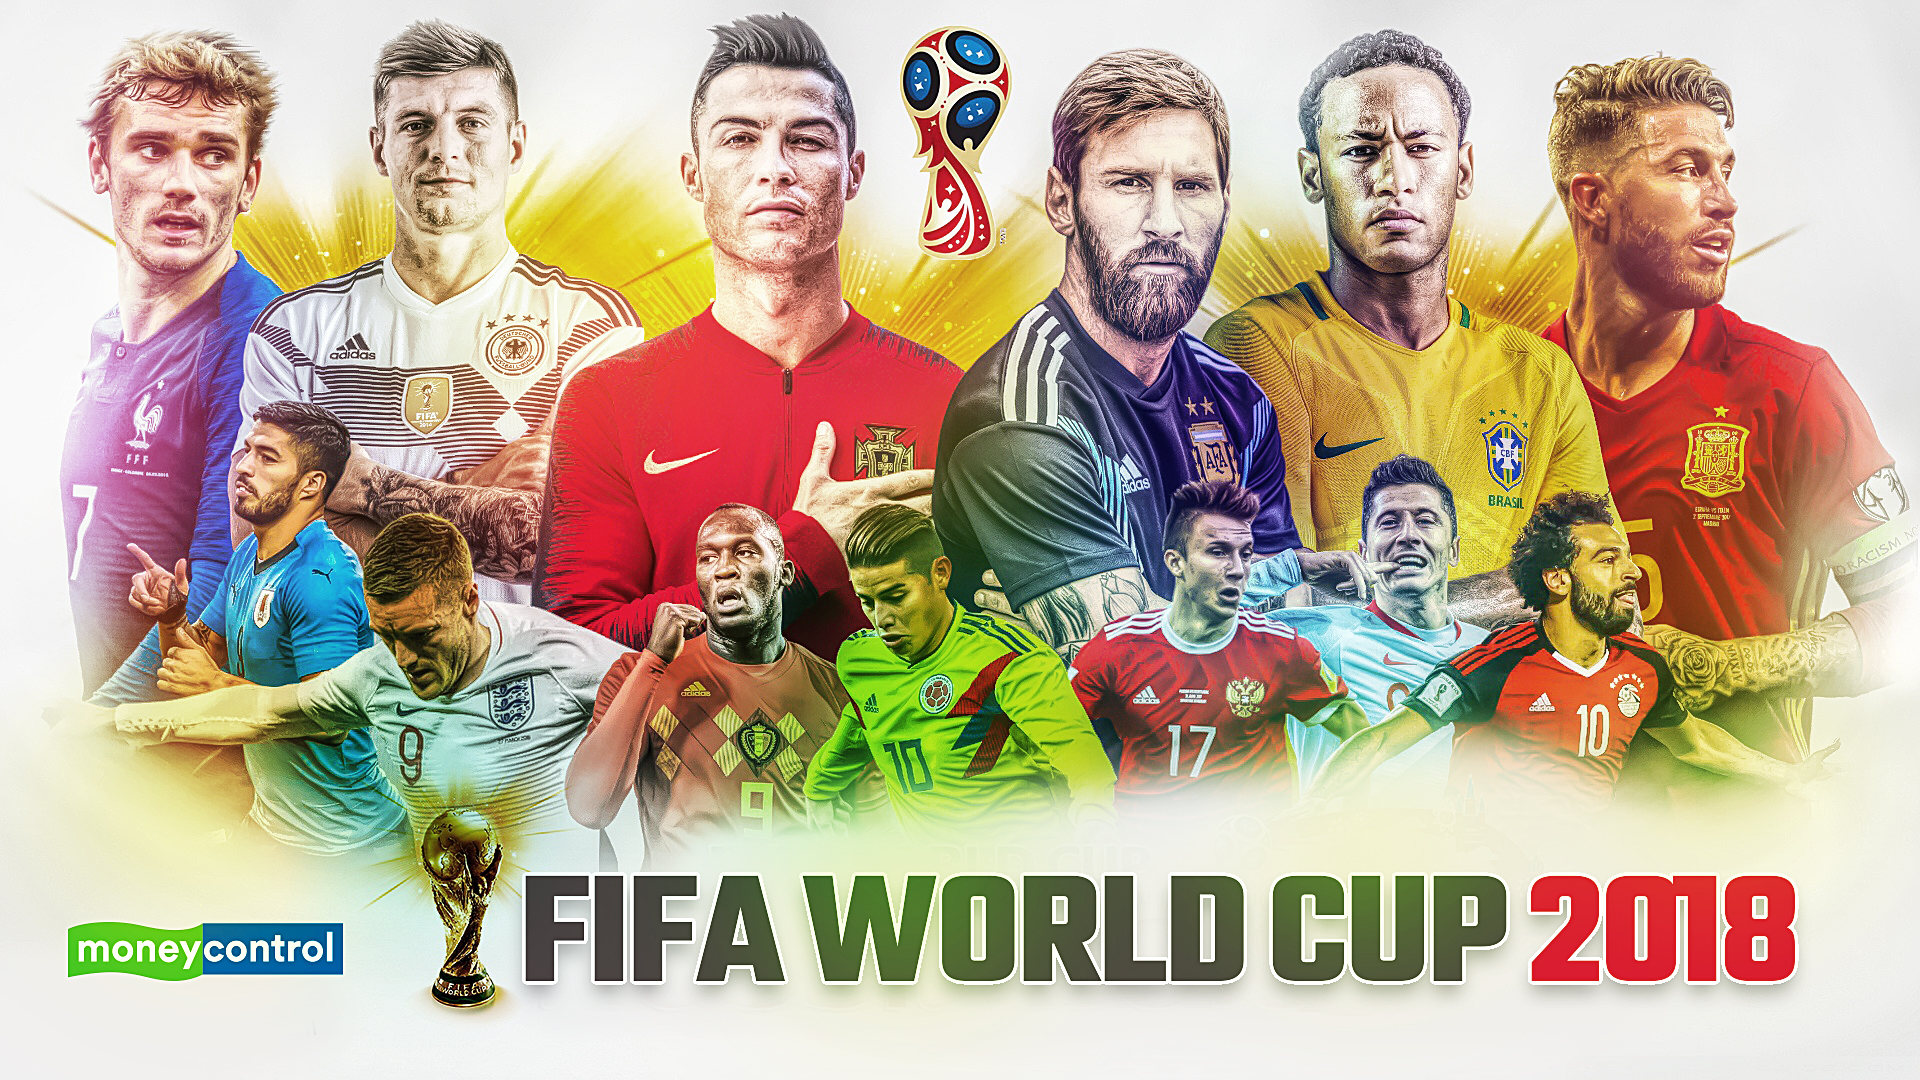 cd42ecad9 FIFA World Cup 2018 - Latest Football News, Schedules, Teams, Results,  Podcasts, Videos - Moneycontrol.com